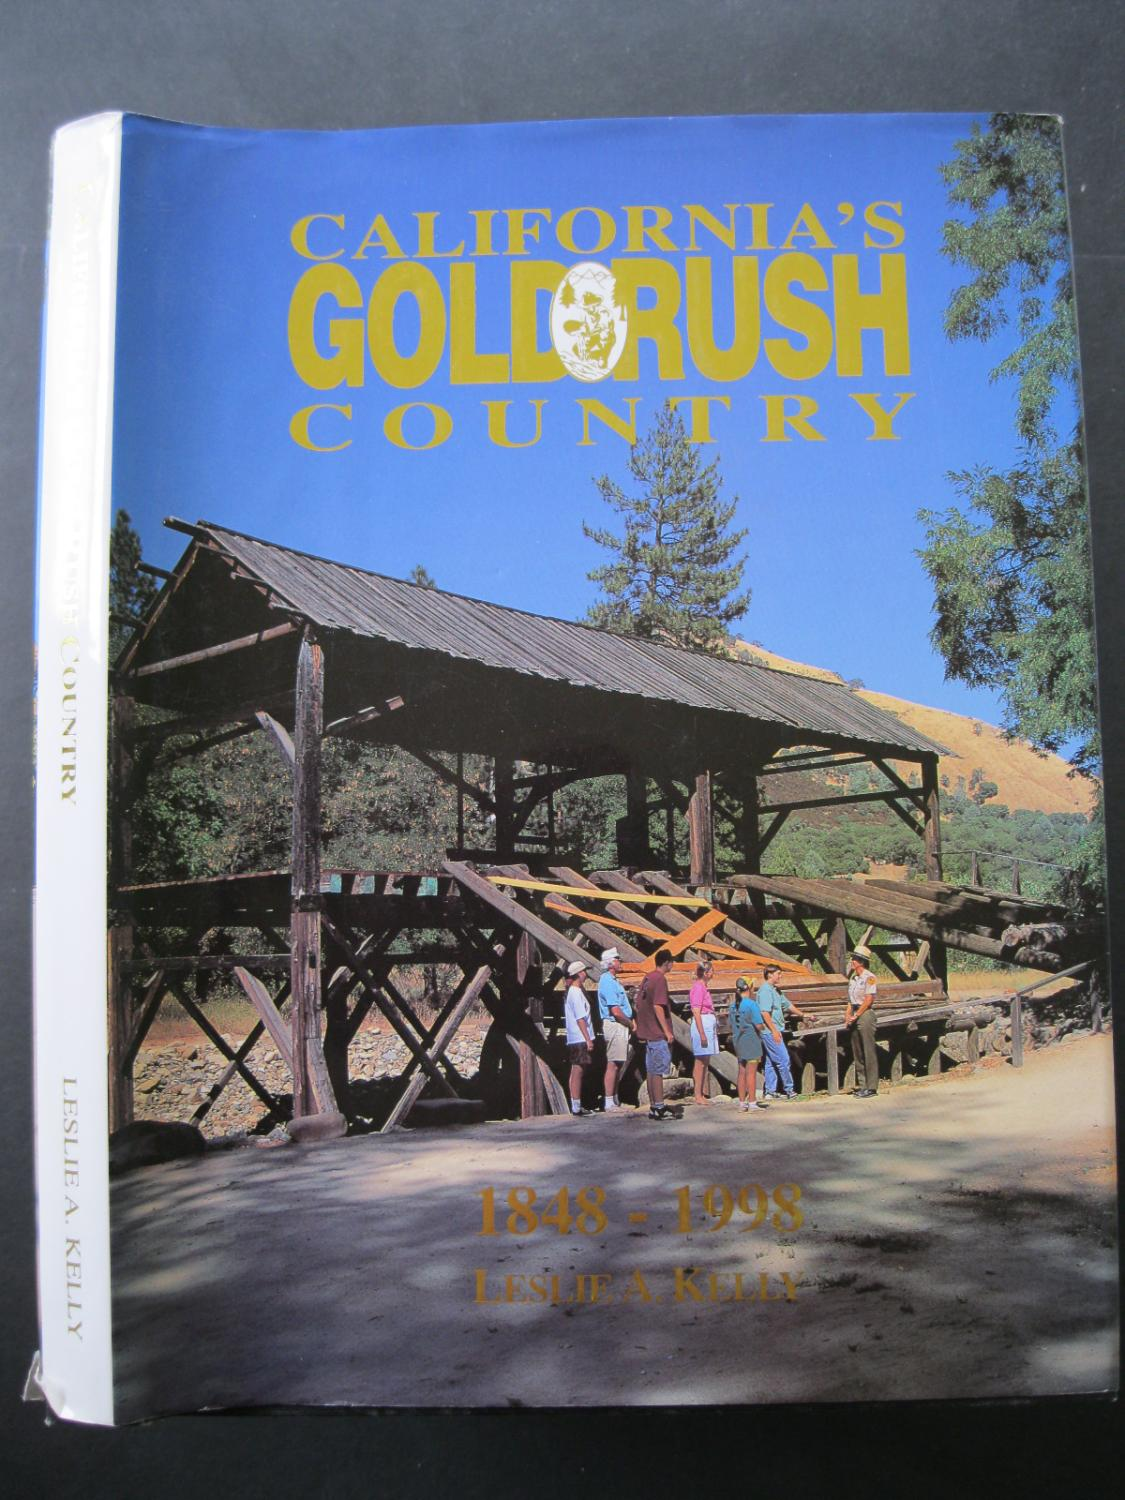 CALIFORNIA\'S GOLD RUSH COUNTRY 1848 - 1998 by Kelly, Leslie A: Les ...